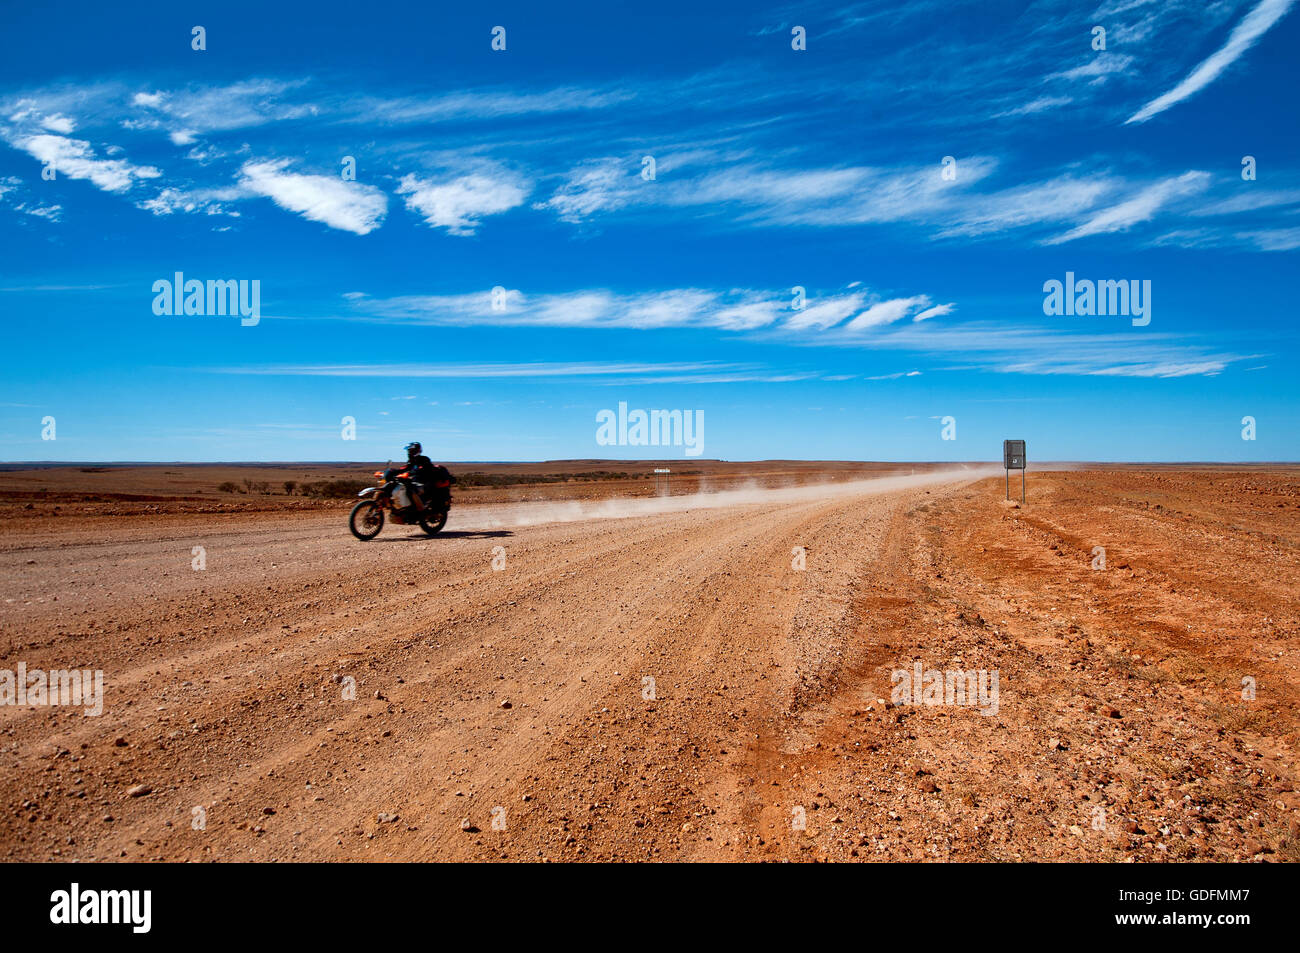 Biker on a desert track in Queensland outback. - Stock Image